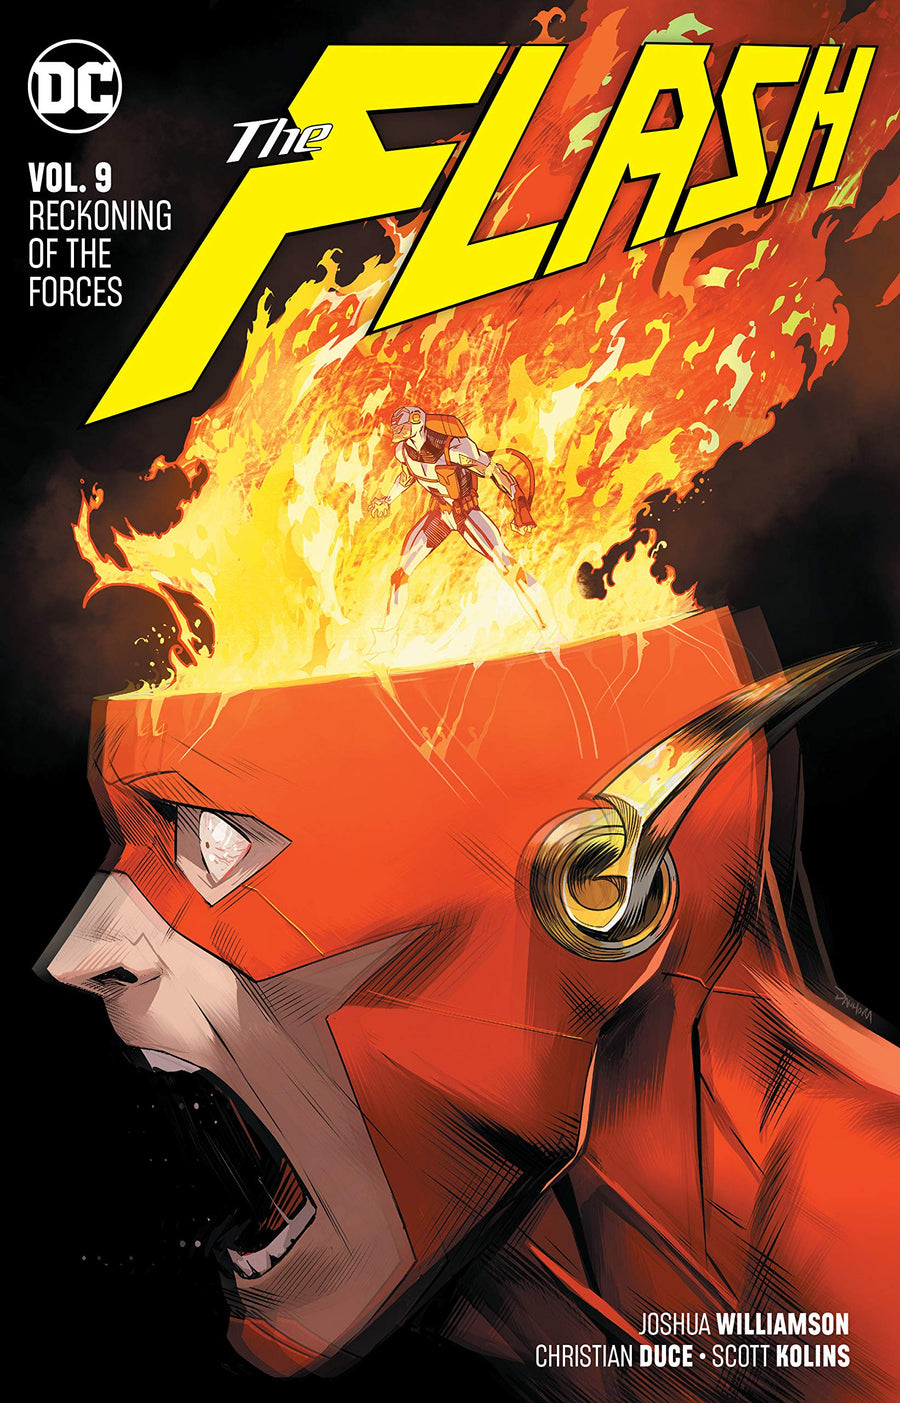 The Flash Vol. 9: Reckoning of the Forces by Joshua Williamson